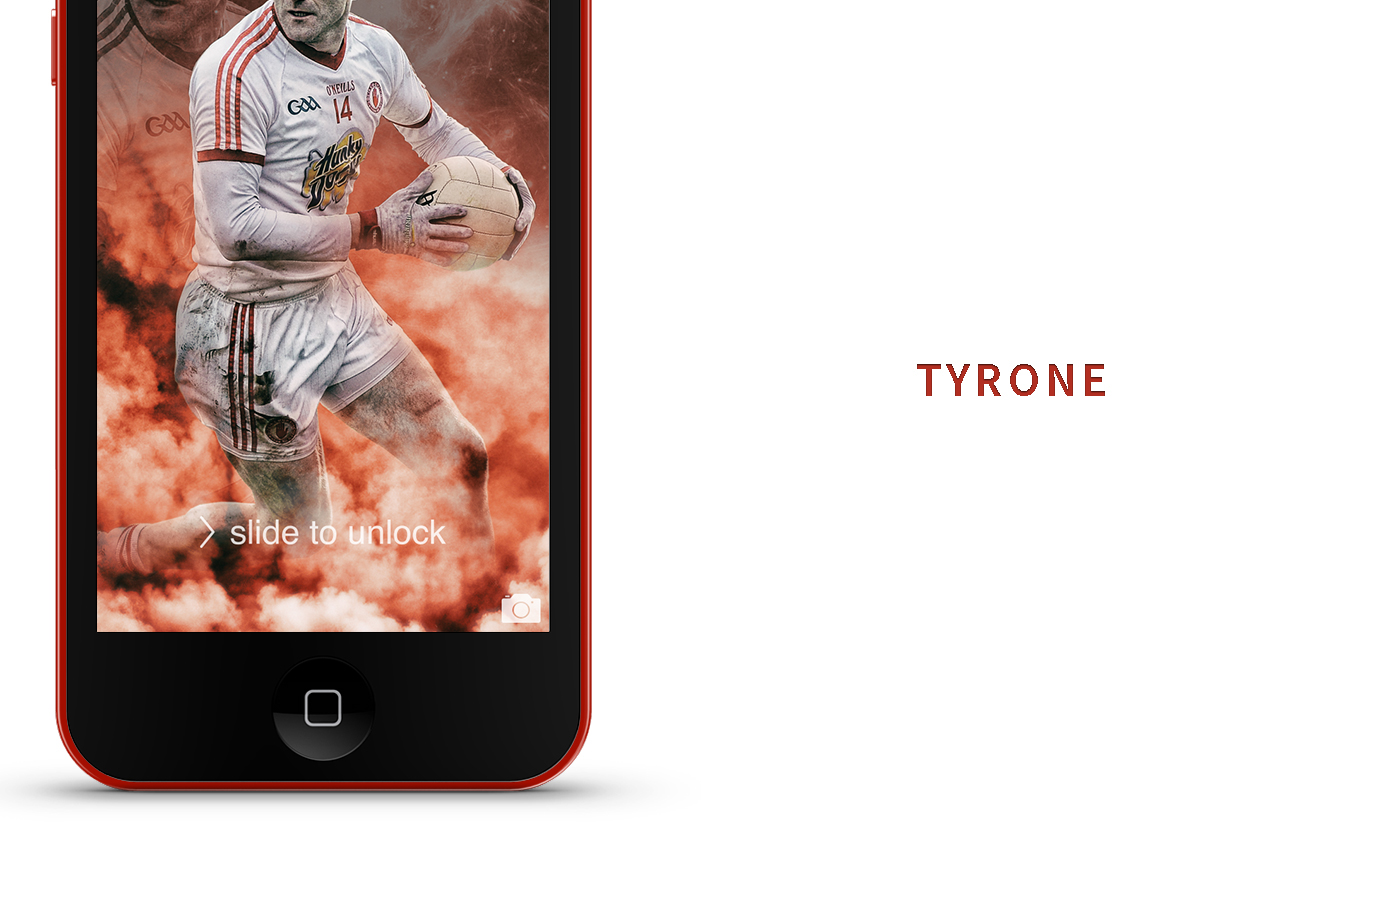 Sport Wallpaper Behance